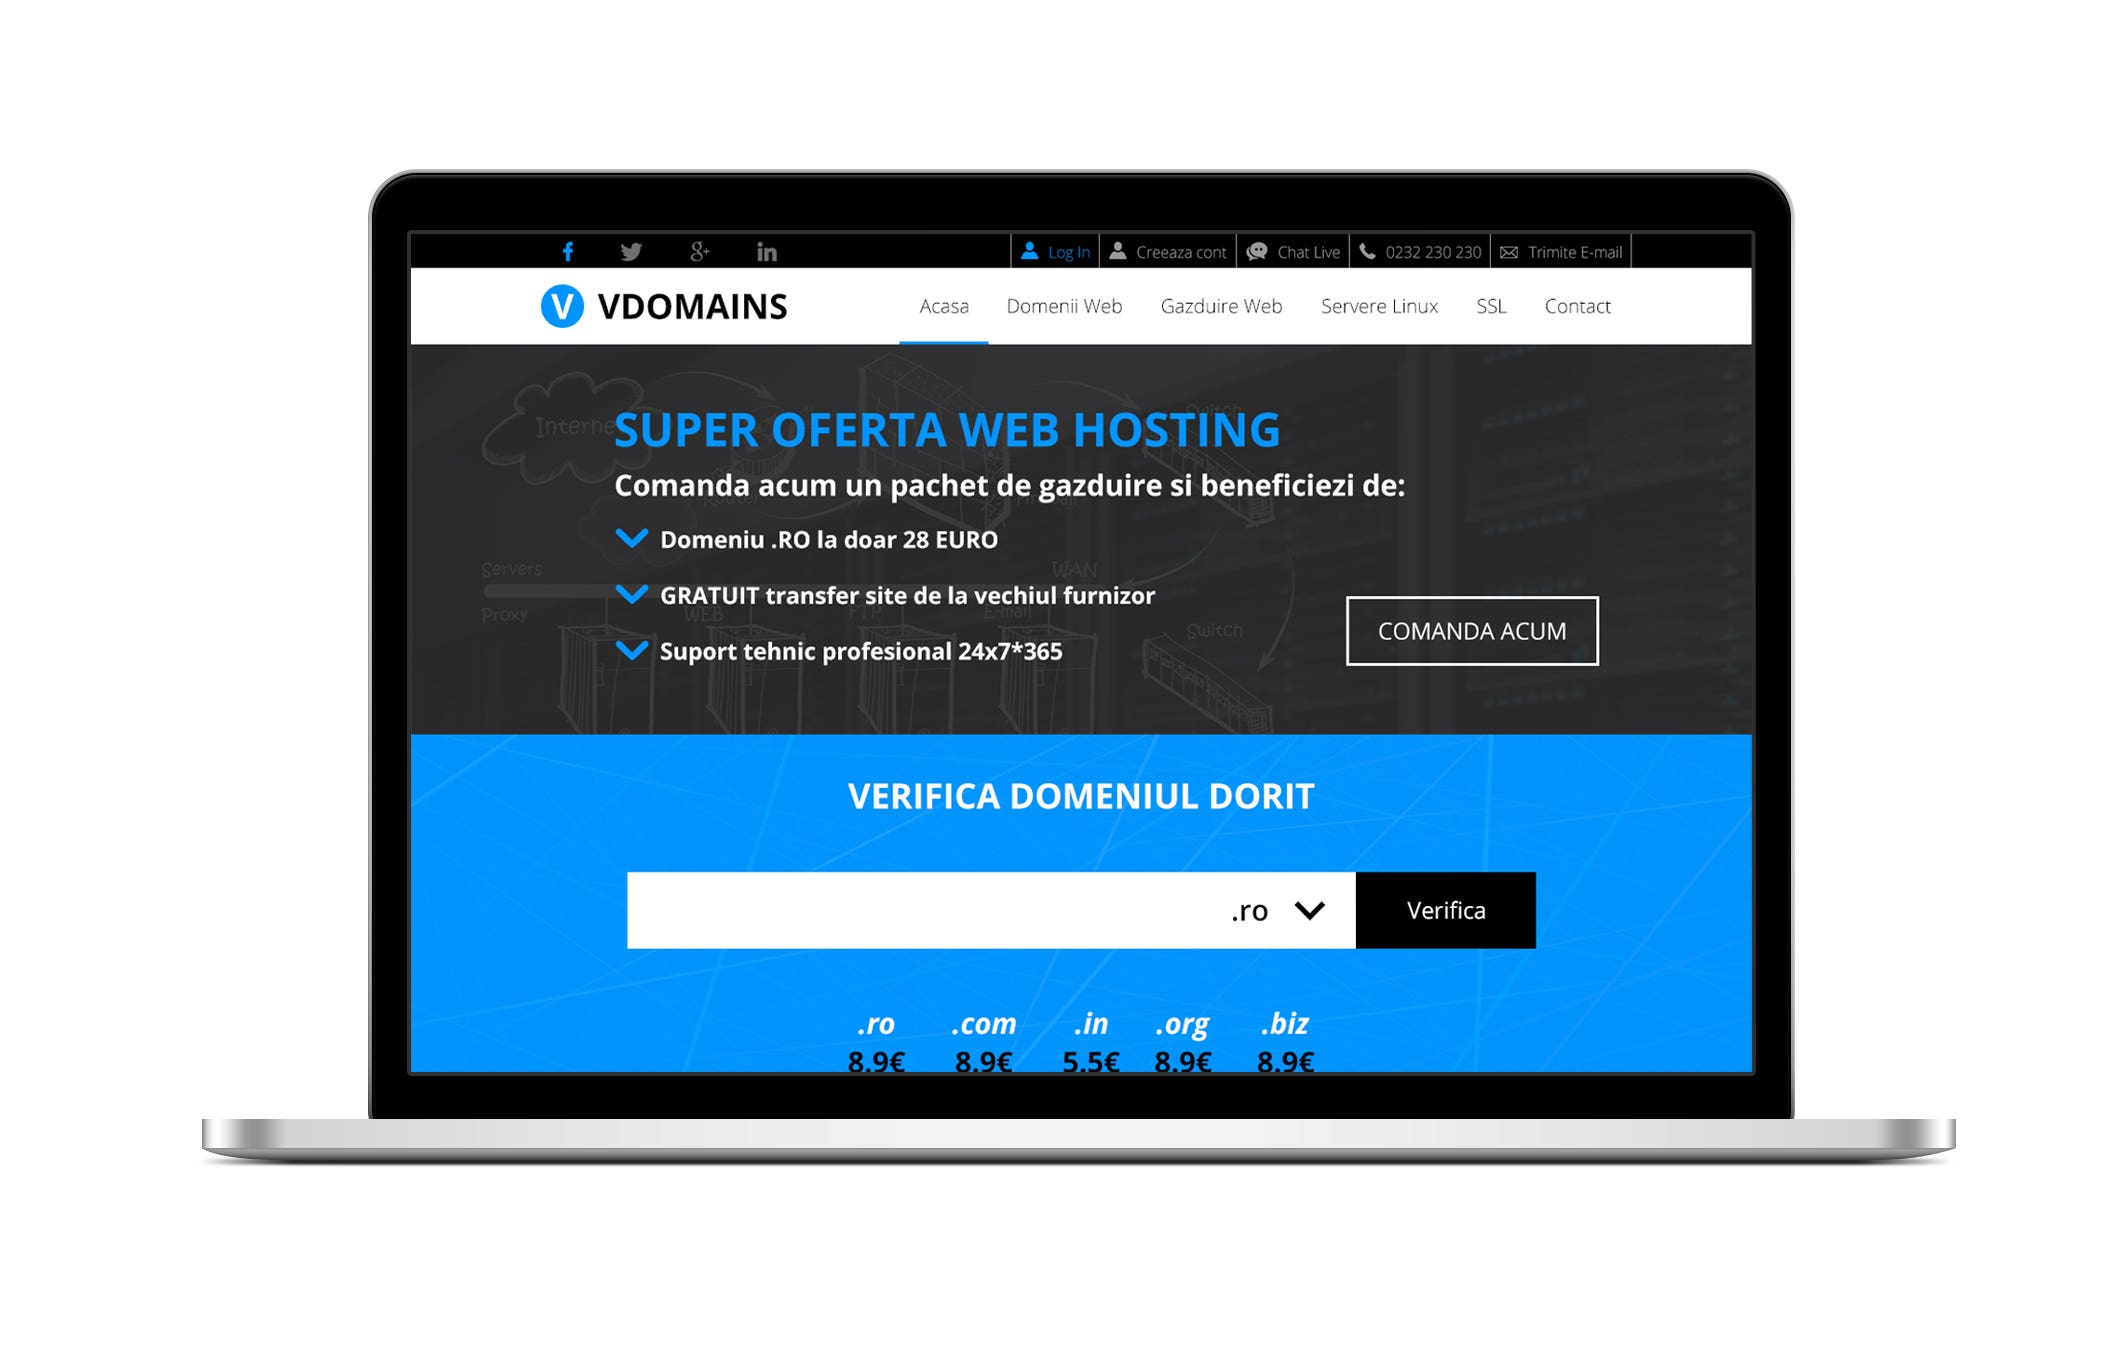 VDOMAINS